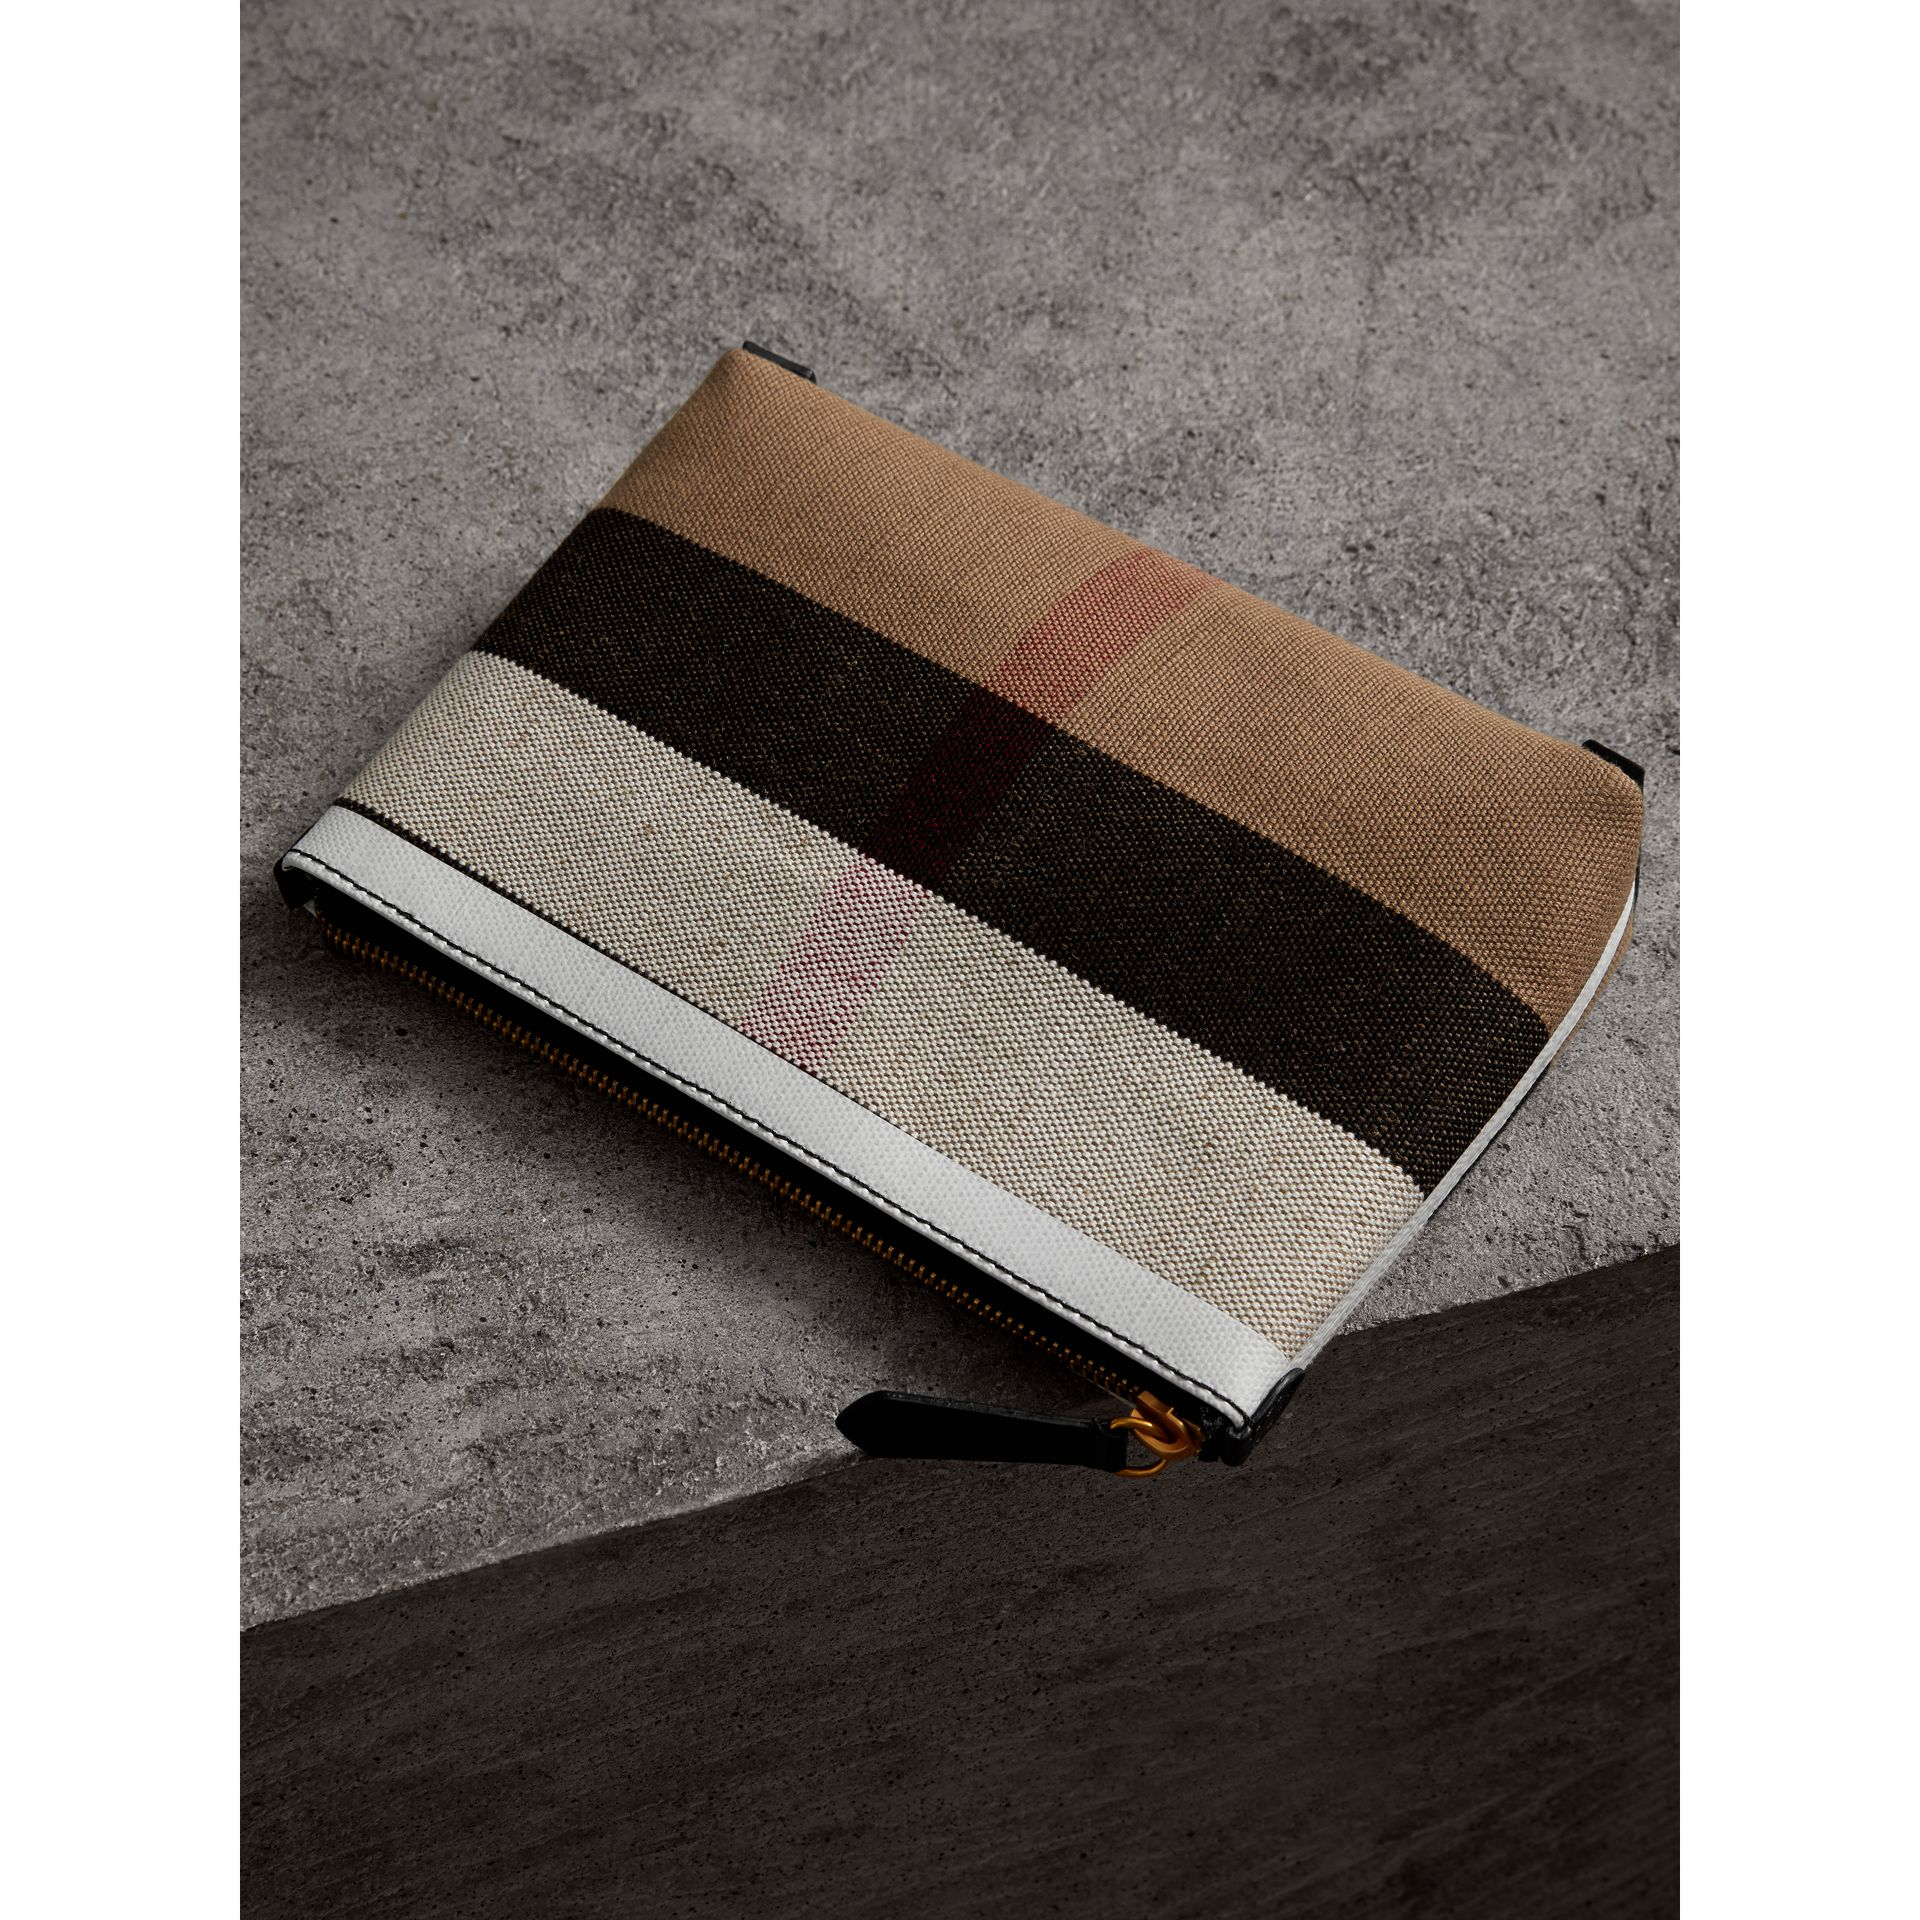 Medium Canvas Check and Leather Zip Pouch in Black/white - Women | Burberry Hong Kong - gallery image 4